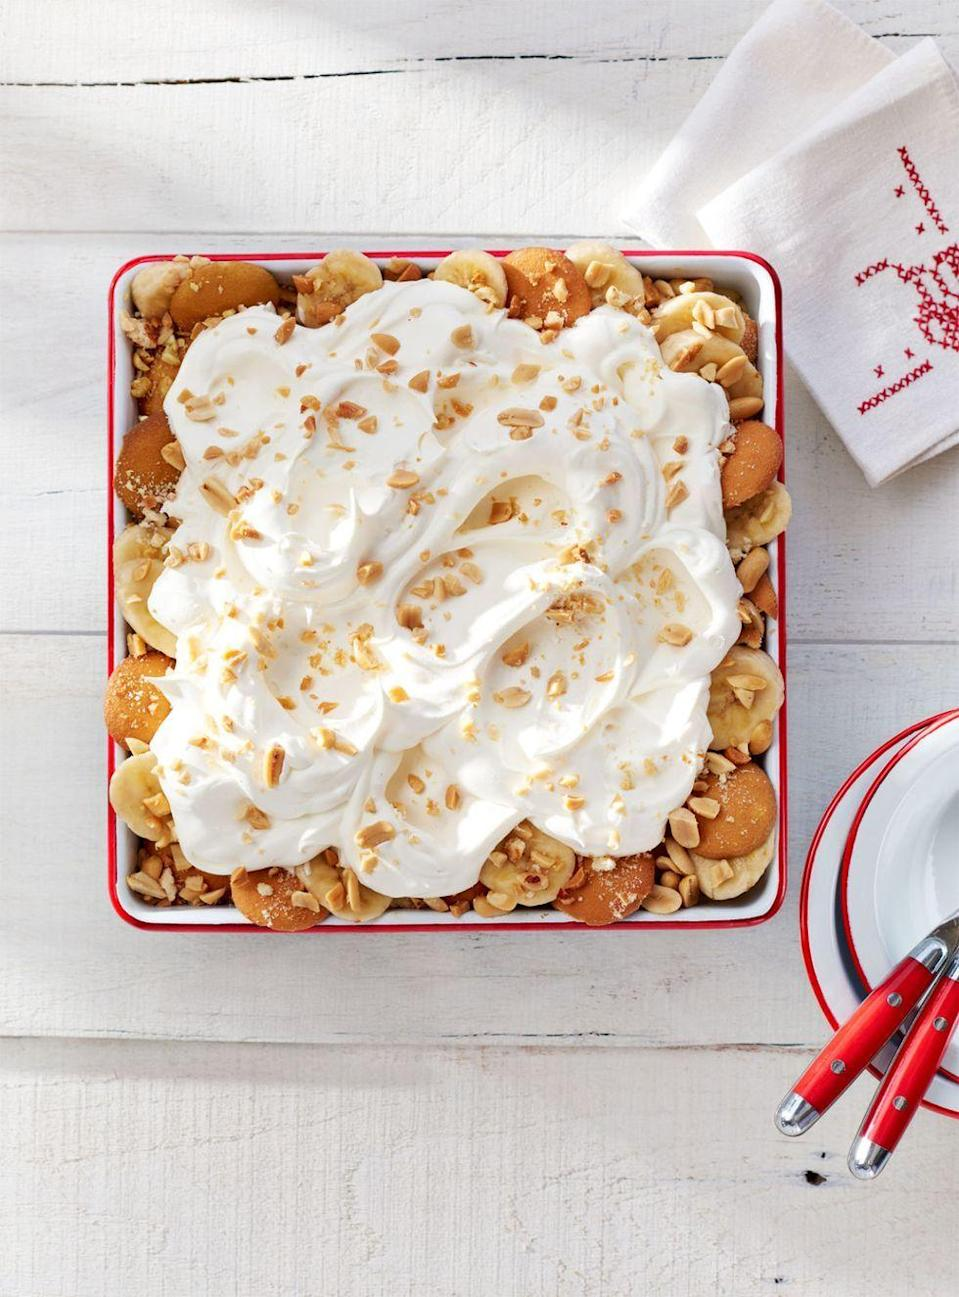 """<p>Everyone at the summer potluck will flip for this peanut butter pudding and wafer cookie dessert piled high with bananas and whipped cream.</p><p><em><a href=""""https://www.countryliving.com/food-drinks/recipes/a35607/salty-peanut-banana-pudding/"""" rel=""""nofollow noopener"""" target=""""_blank"""" data-ylk=""""slk:Get the recipe from Country Living »"""" class=""""link rapid-noclick-resp"""">Get the recipe from Country Living »</a></em></p><p><strong>RELATED: </strong><a href=""""https://www.goodhousekeeping.com/food-recipes/g32631508/easy-banana-recipes/"""" rel=""""nofollow noopener"""" target=""""_blank"""" data-ylk=""""slk:23 Easy Banana Recipes for Sweet Baked Goods and Fruity Treats"""" class=""""link rapid-noclick-resp"""">23 Easy Banana Recipes for Sweet Baked Goods and Fruity Treats</a></p>"""